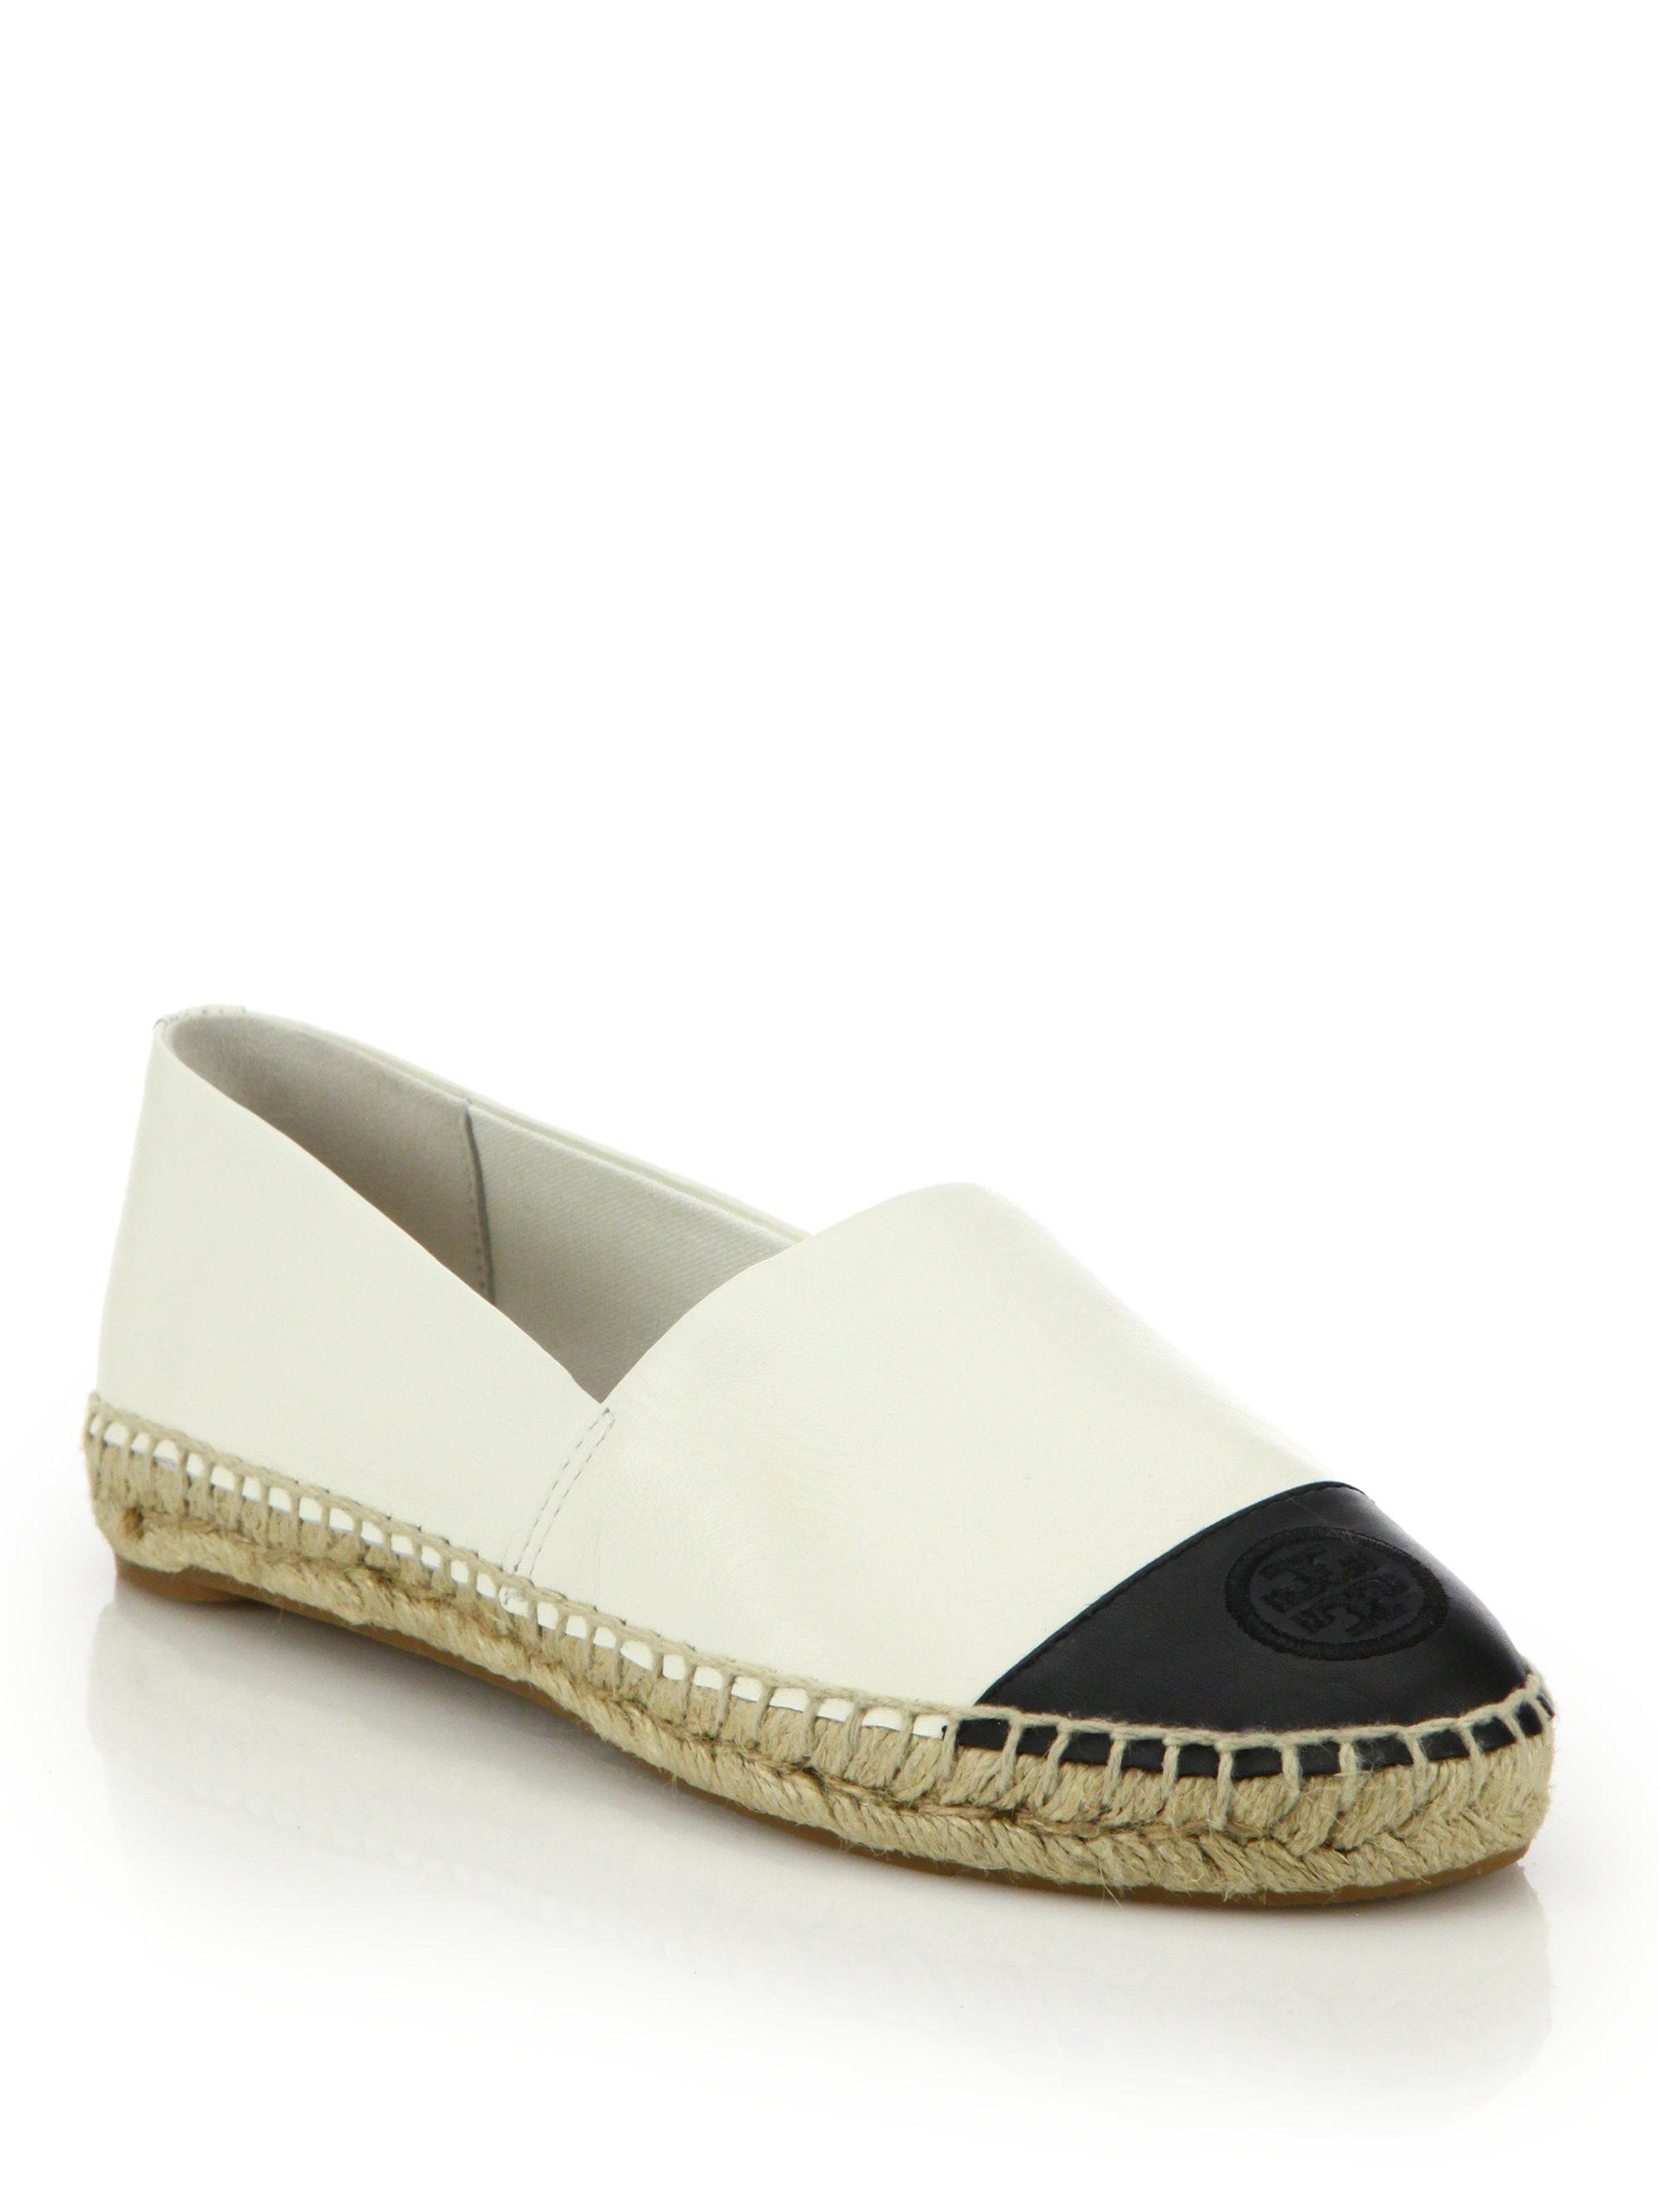 1e794198afe Lyst - Tory Burch Colorblock Leather Espadrille Flats in White